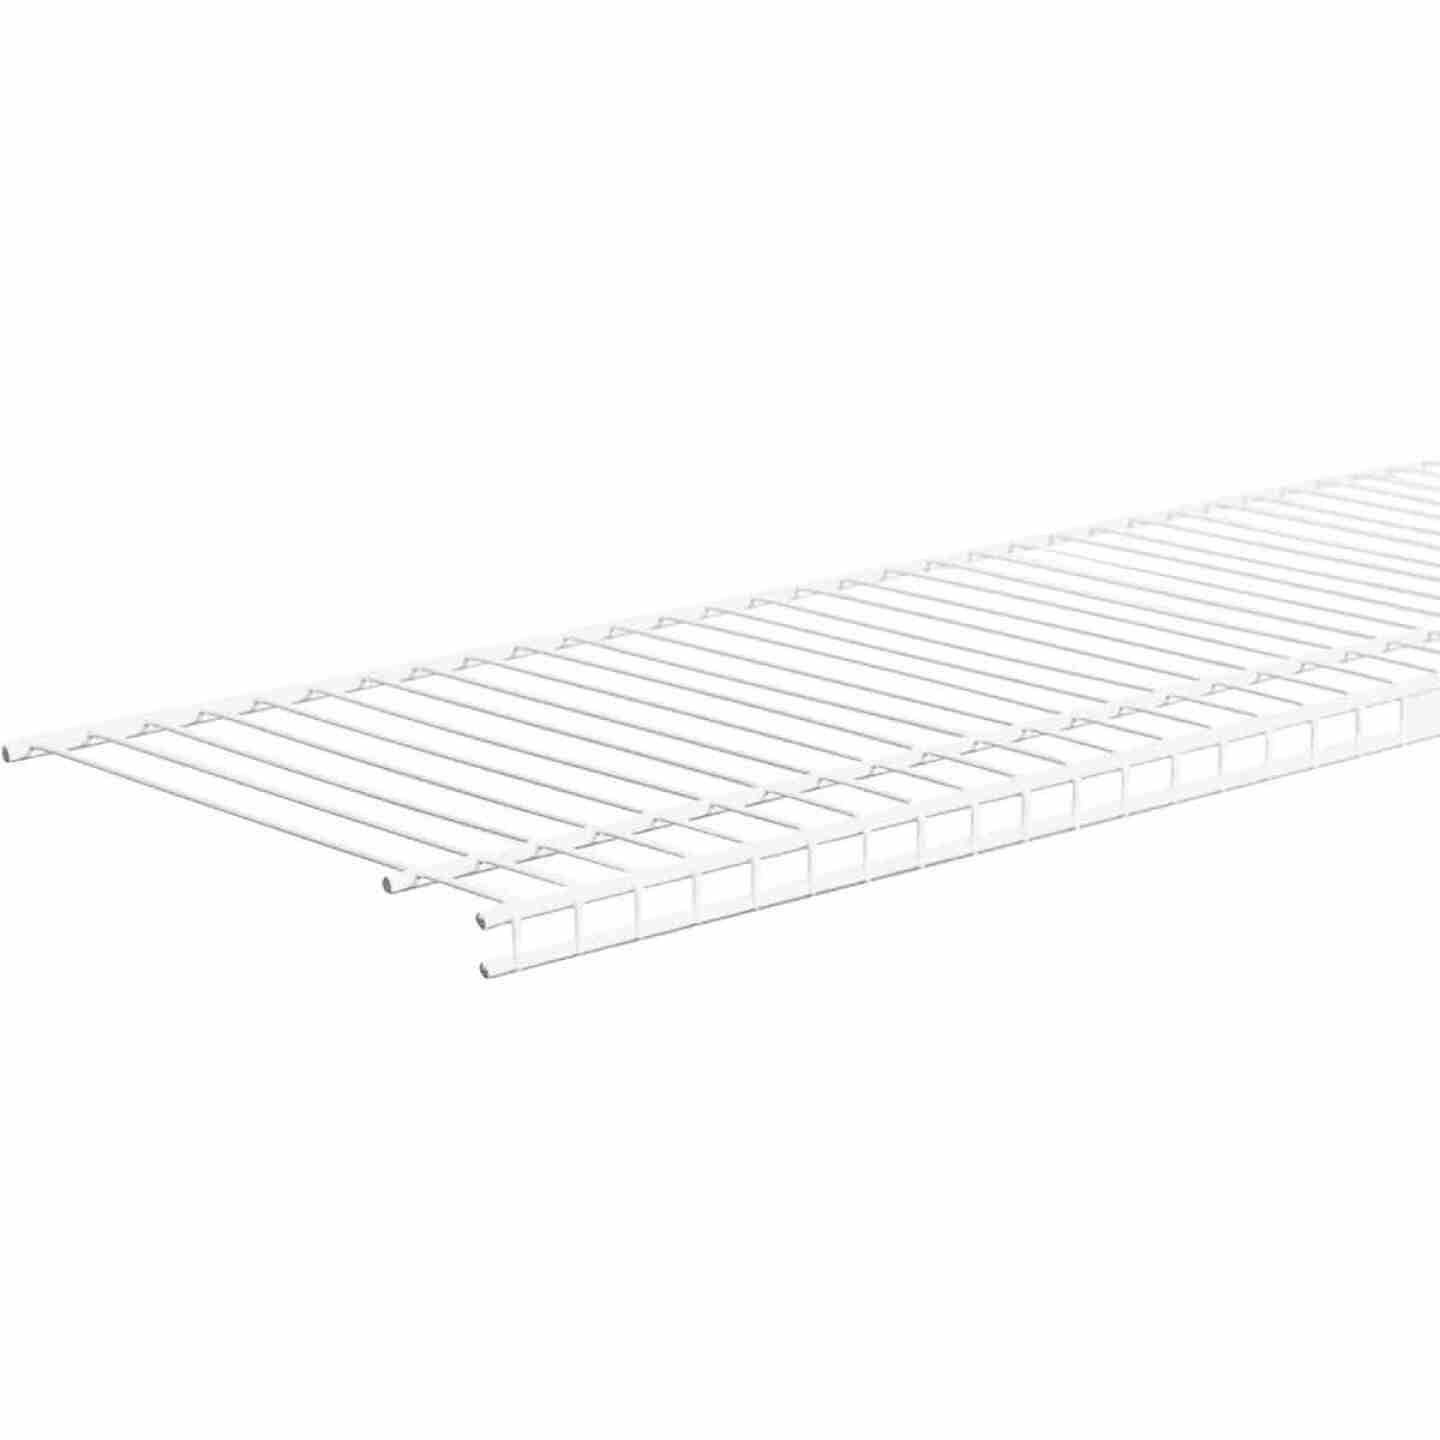 ClosetMaid SuperSlide 4 Ft. W. x 12 In. D. Ventilated Closet Shelf, White Image 3